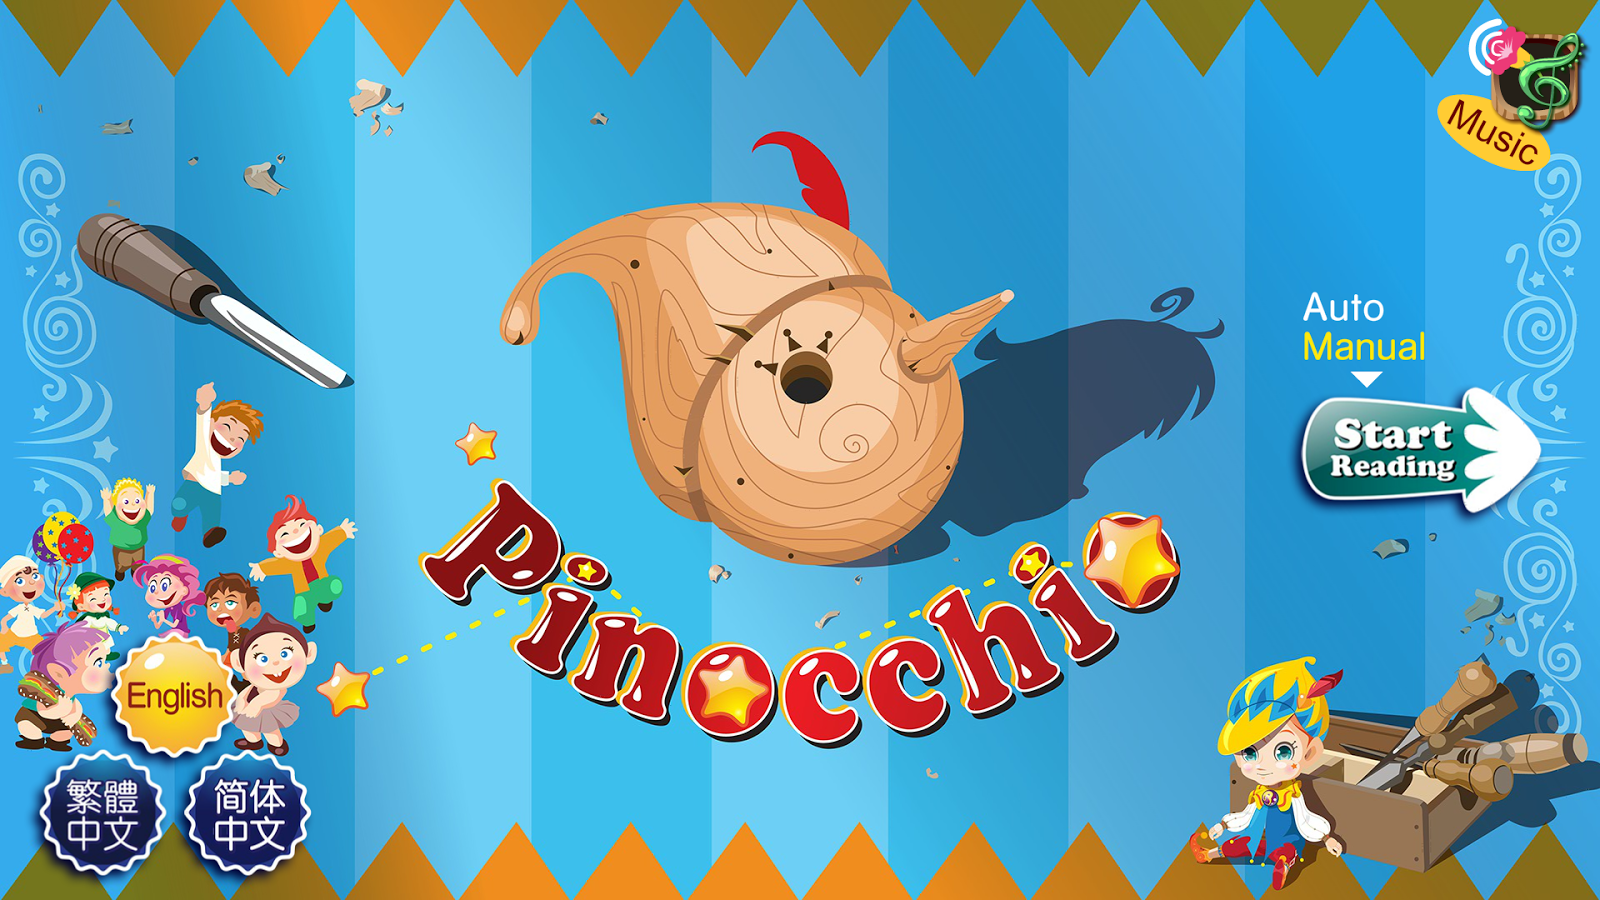 a report on the book pinocchio by carlo collodi Buy pinocchio by carlo collodi, roberto innocenti (isbn: 9780224070560) from amazon's book store everyday low prices and free delivery on eligible orders.